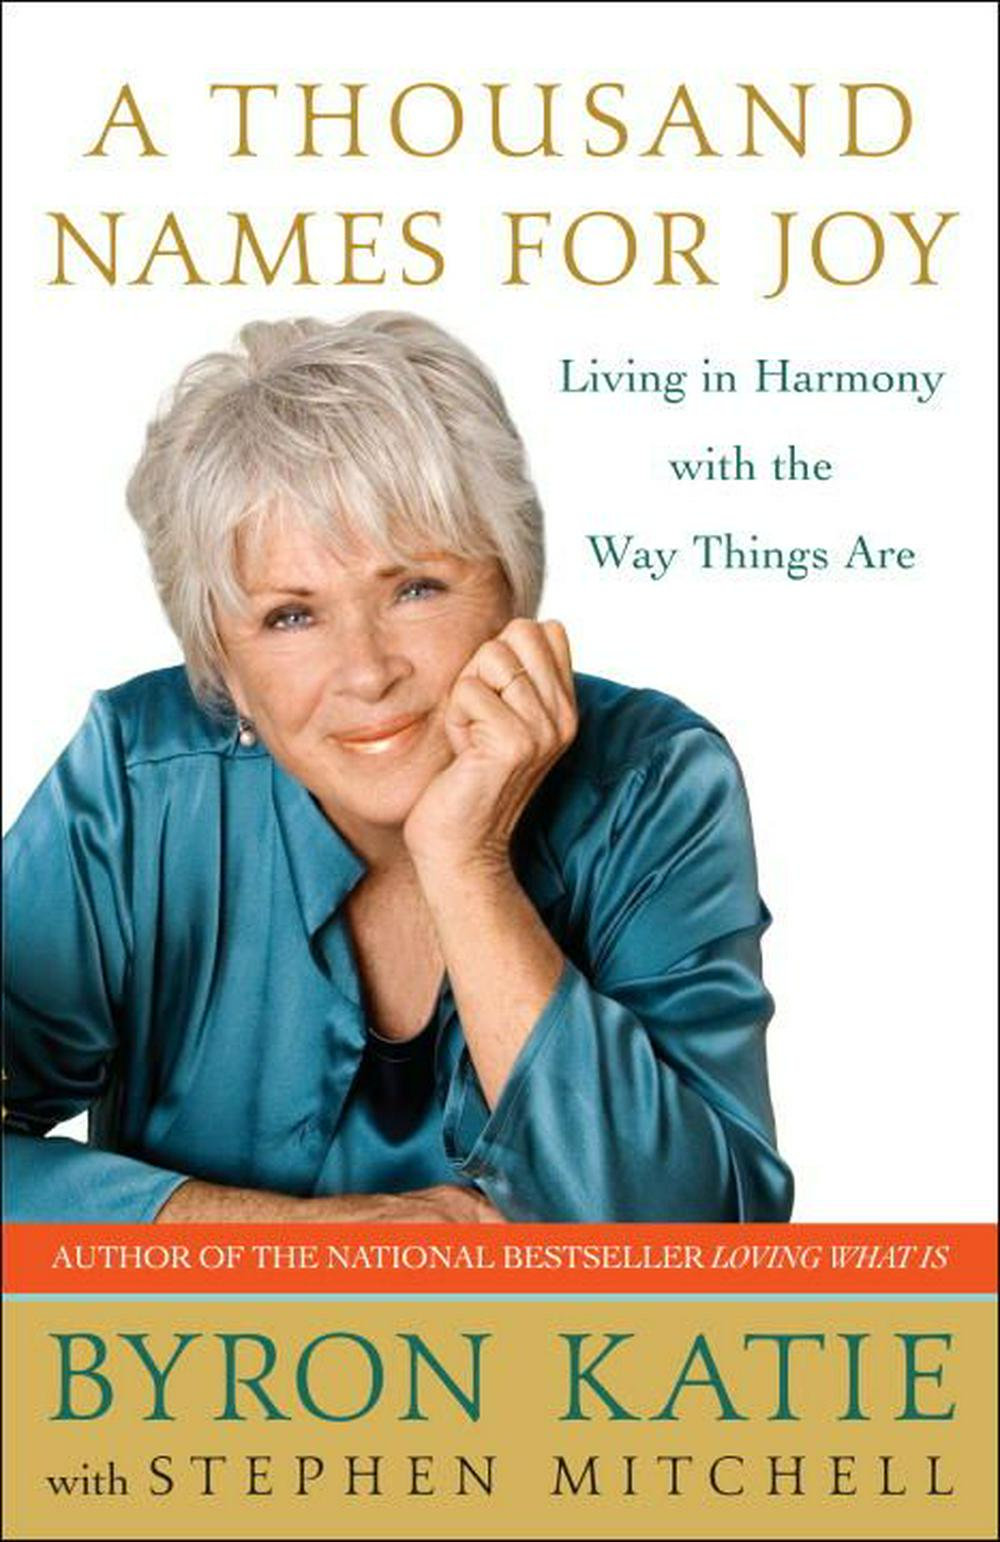 A Thousand Names for Joy by Byron Katie, ISBN: 9780307339249